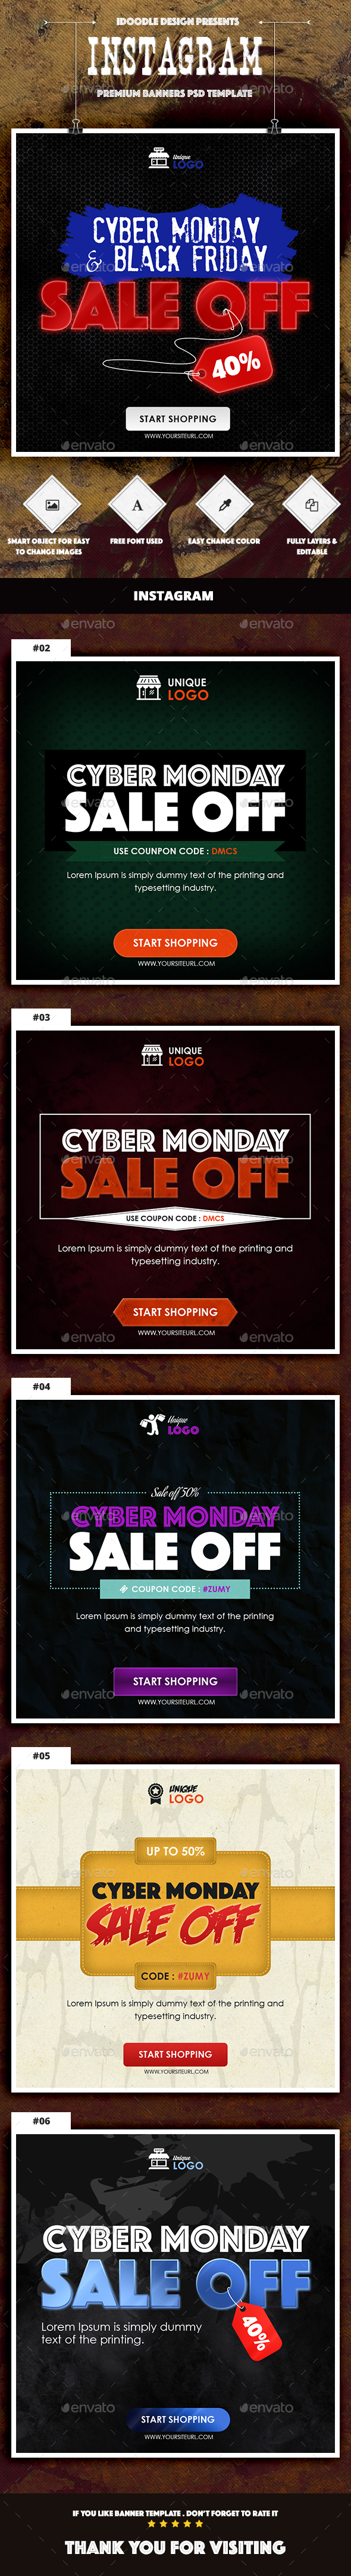 Cyber Monday Banners Instagram - Social Media Web Elements